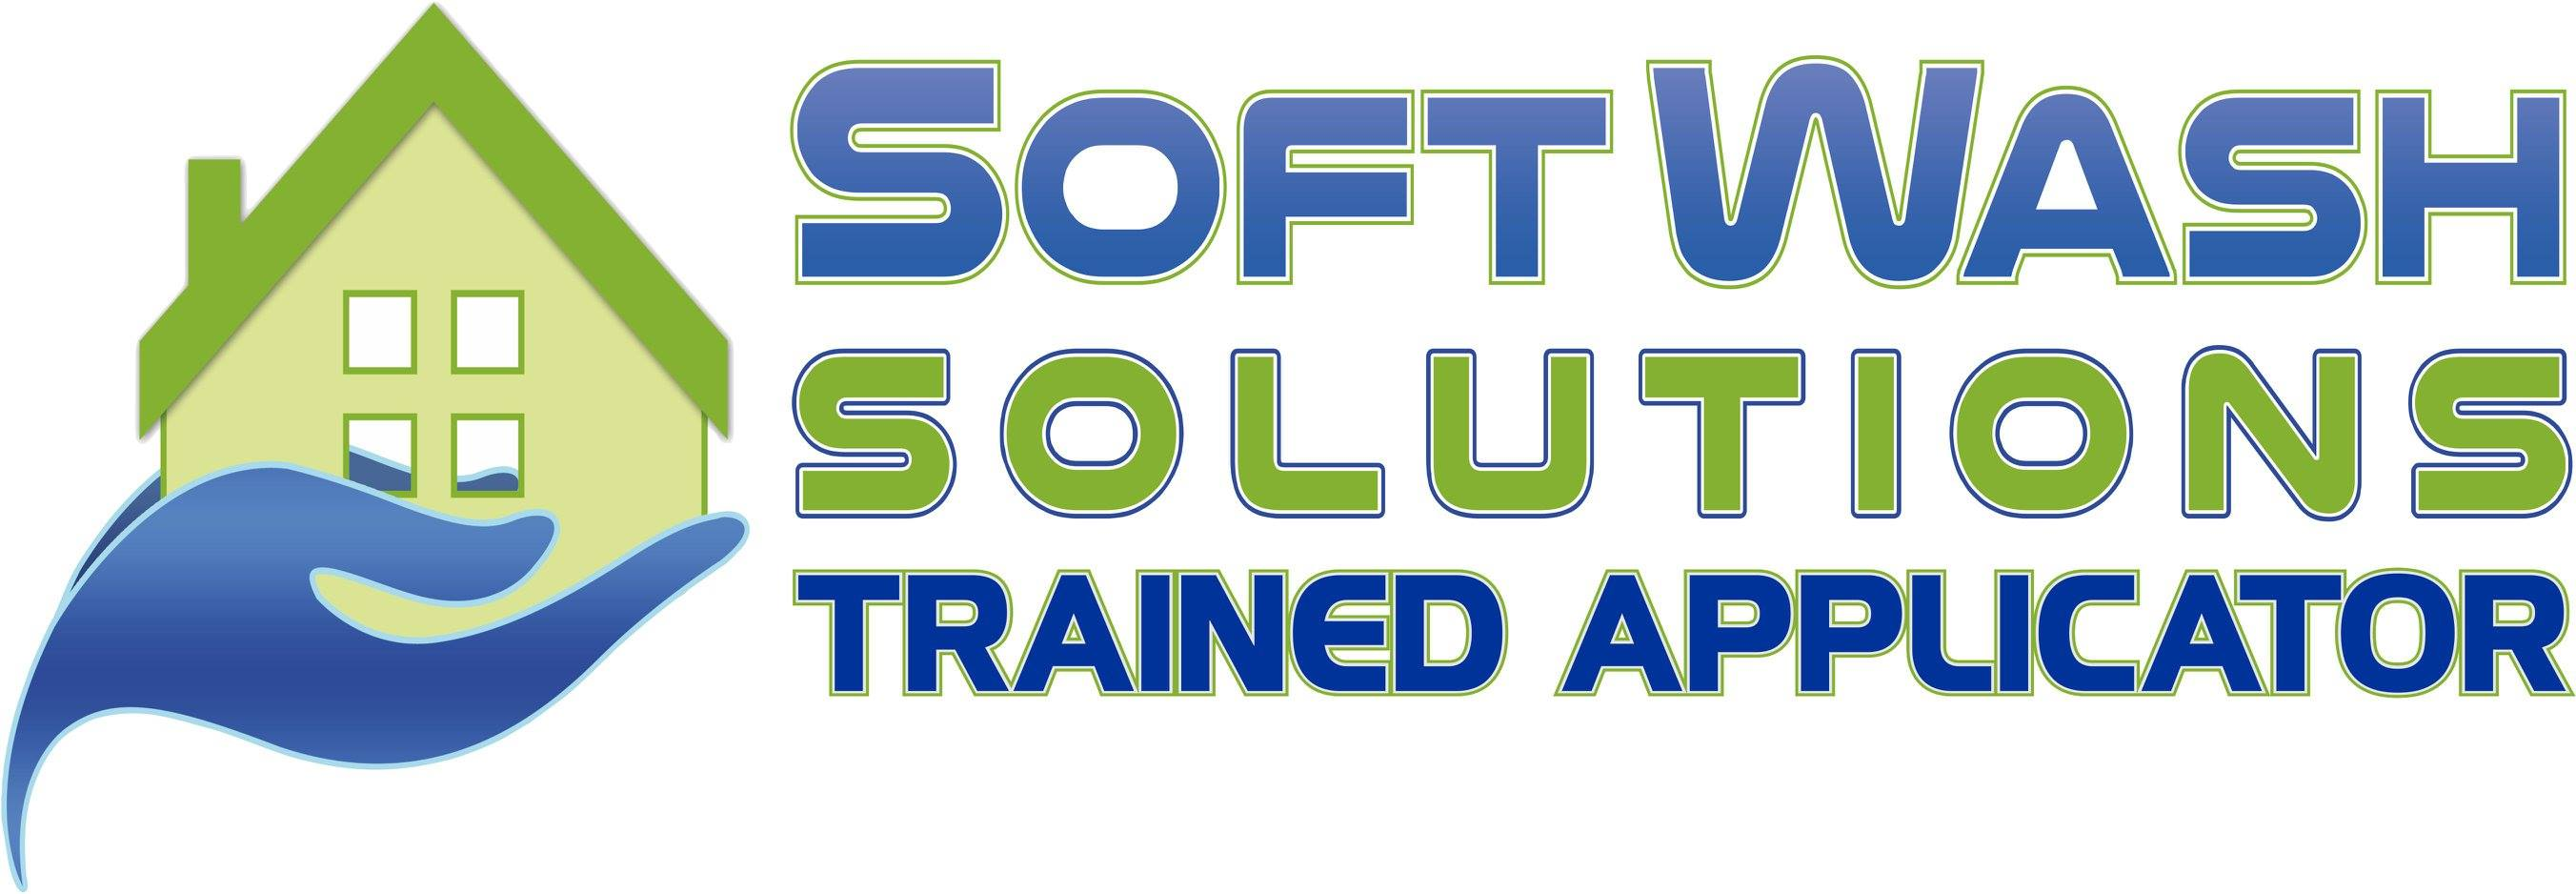 SoftWash Solutions Trained Applicator